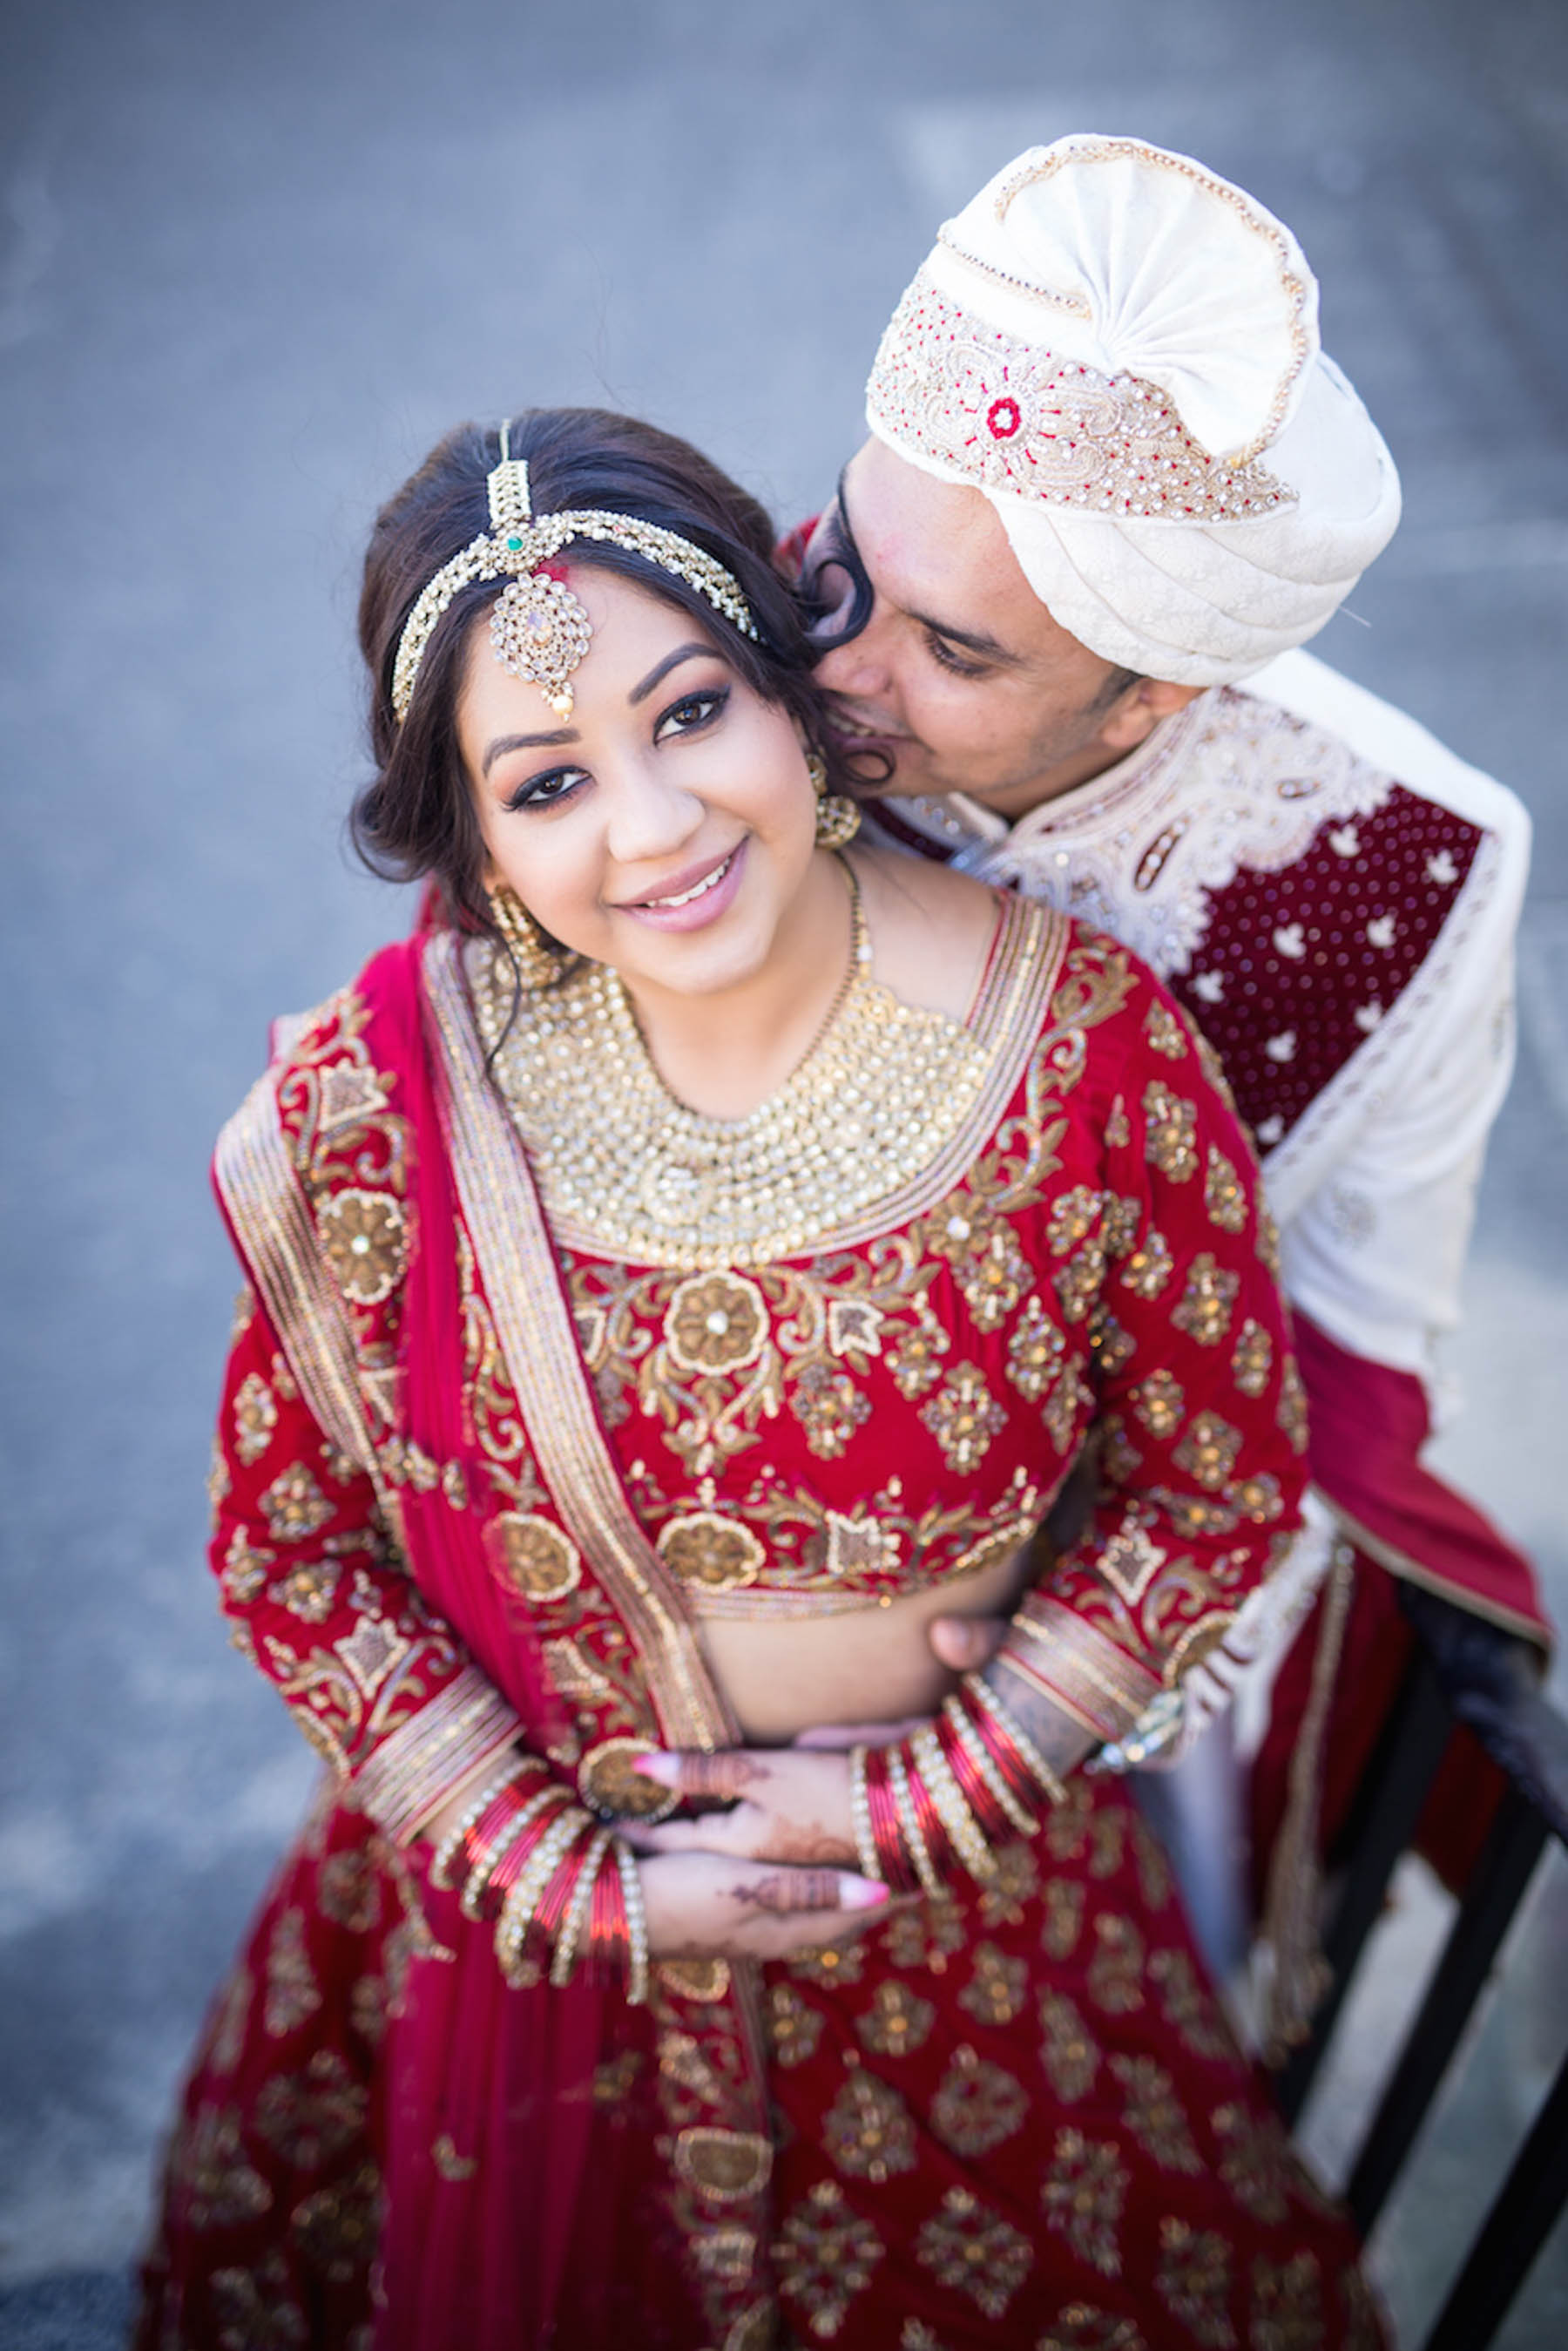 Elegant Outdoor Indian Wedding With Harbour Views_Sheena and Jon